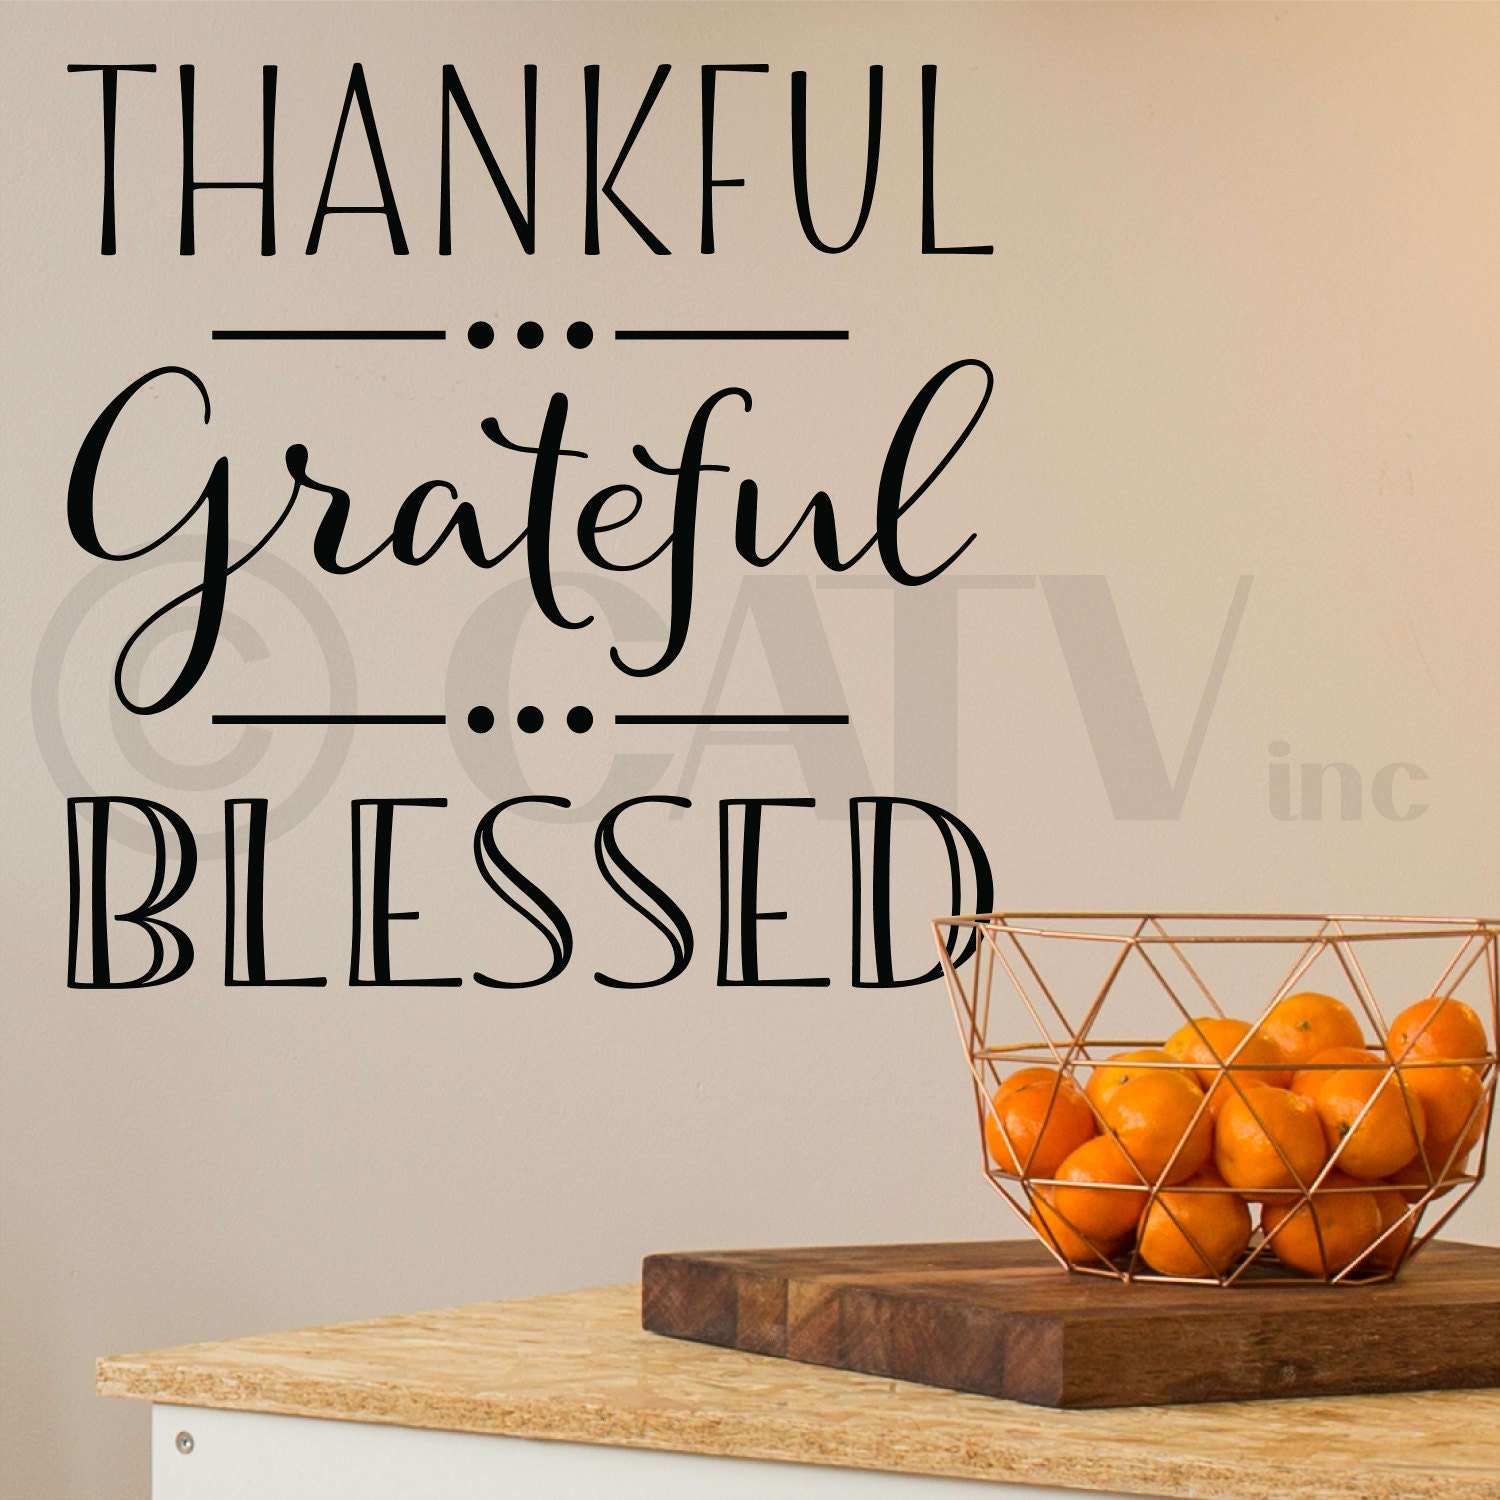 Thankful Grateful Blessed Vinyl Lettering Wall Decal Sticker